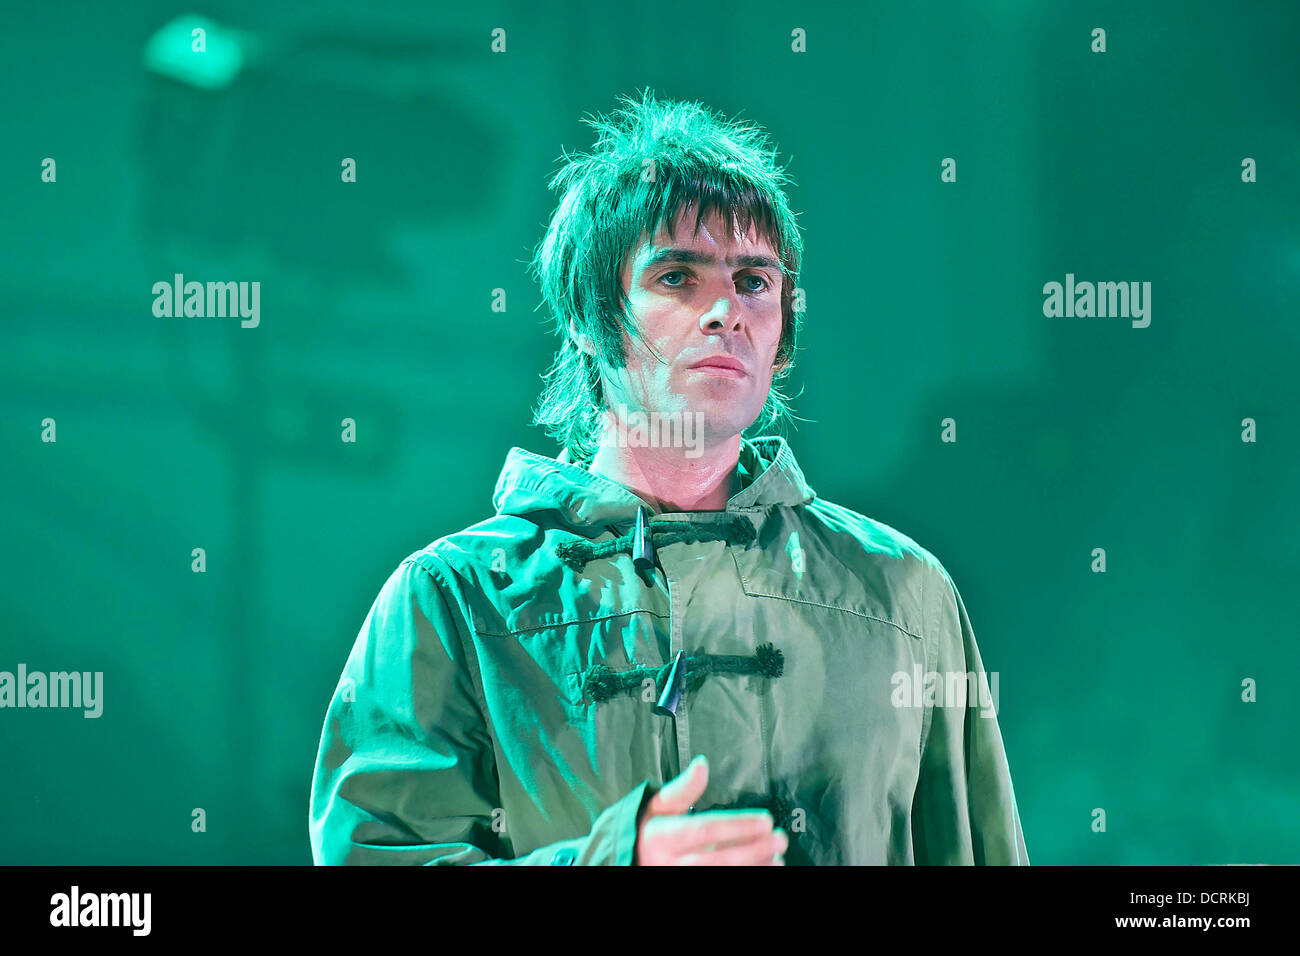 Liam Gallagher of Beady Eye performing live at Brixton Academy. London, England - 17.11.11 - Stock Image